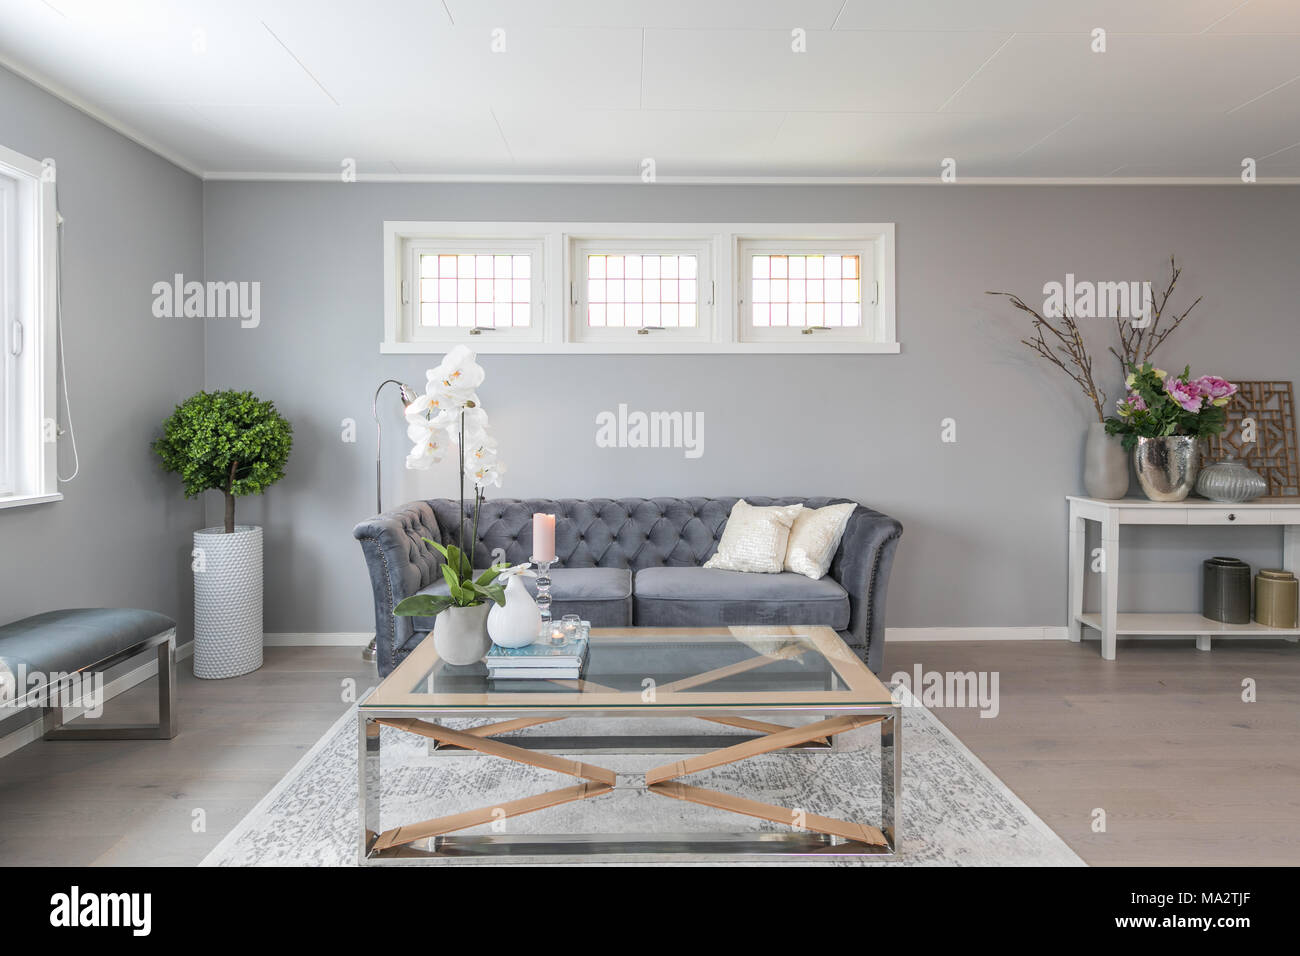 Fine Scandinavian Interior Sitting Room With Grey Walls And Couch Beatyapartments Chair Design Images Beatyapartmentscom